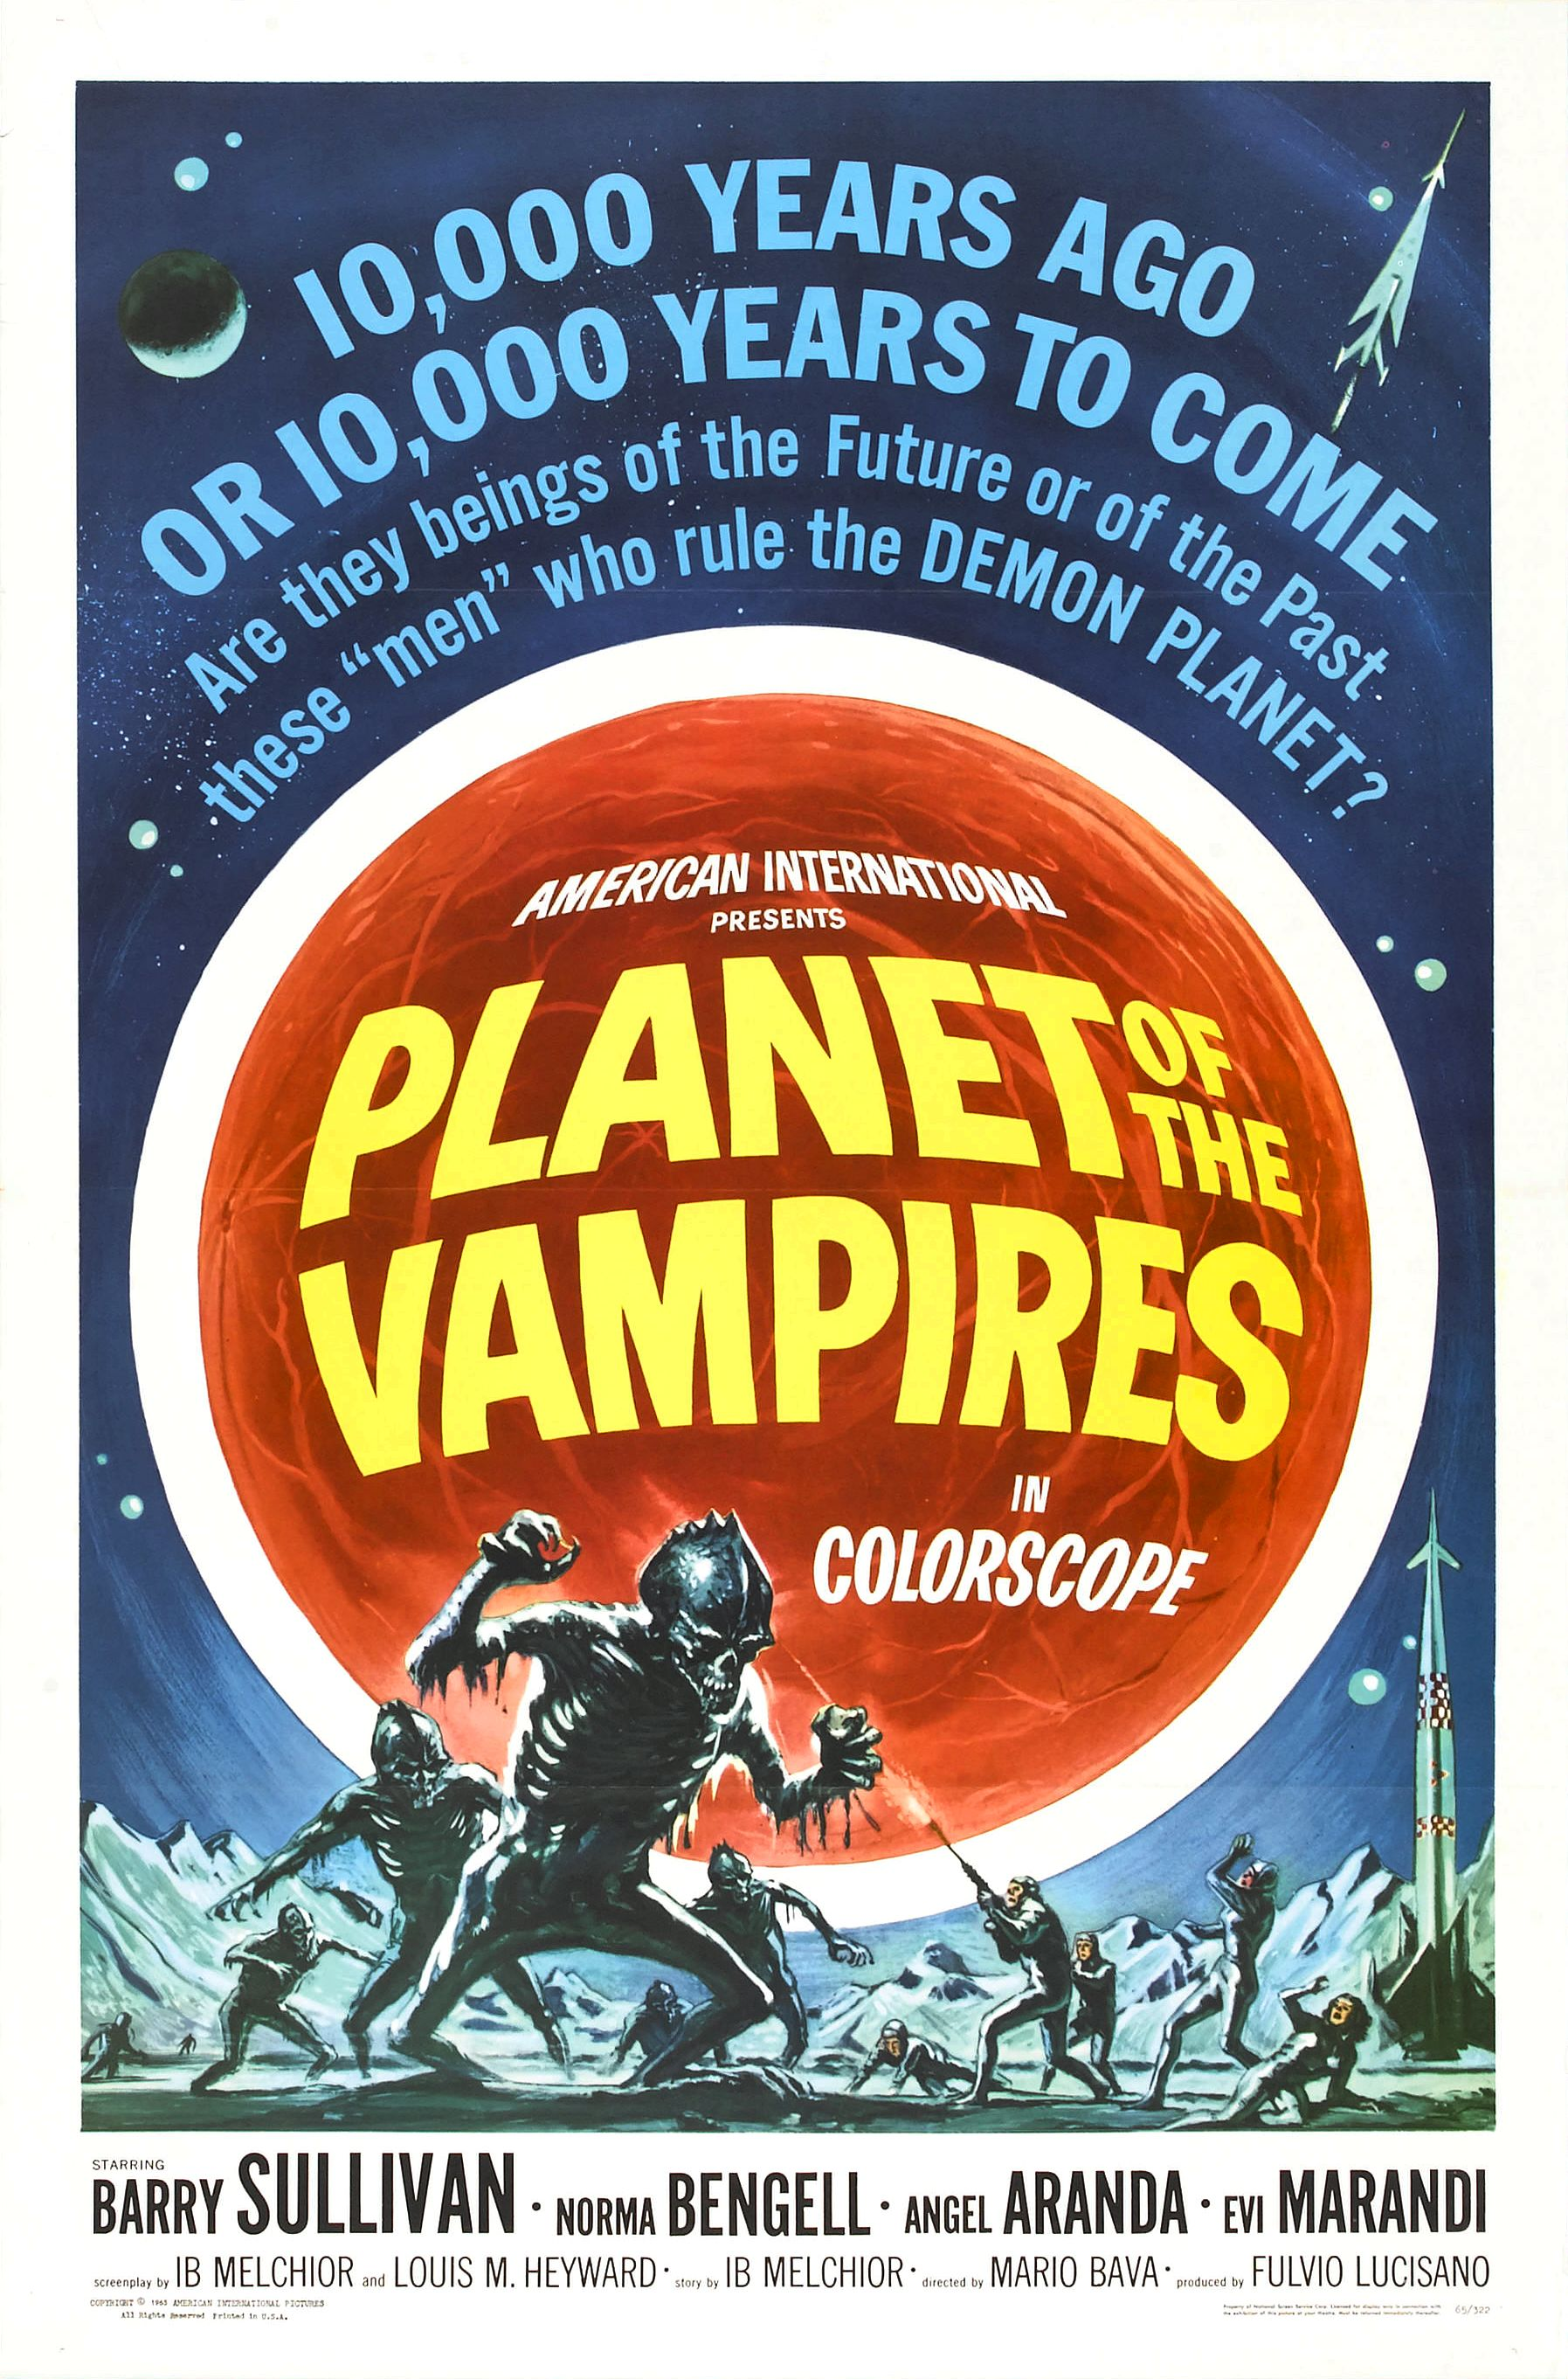 planet-of-the-vampires-1kite44planet-of-the-vampires-1planet-of-the-vampires-97planet-of-the-vampires-95planet-of-the-vampires-100planet-of-the-vampires-5